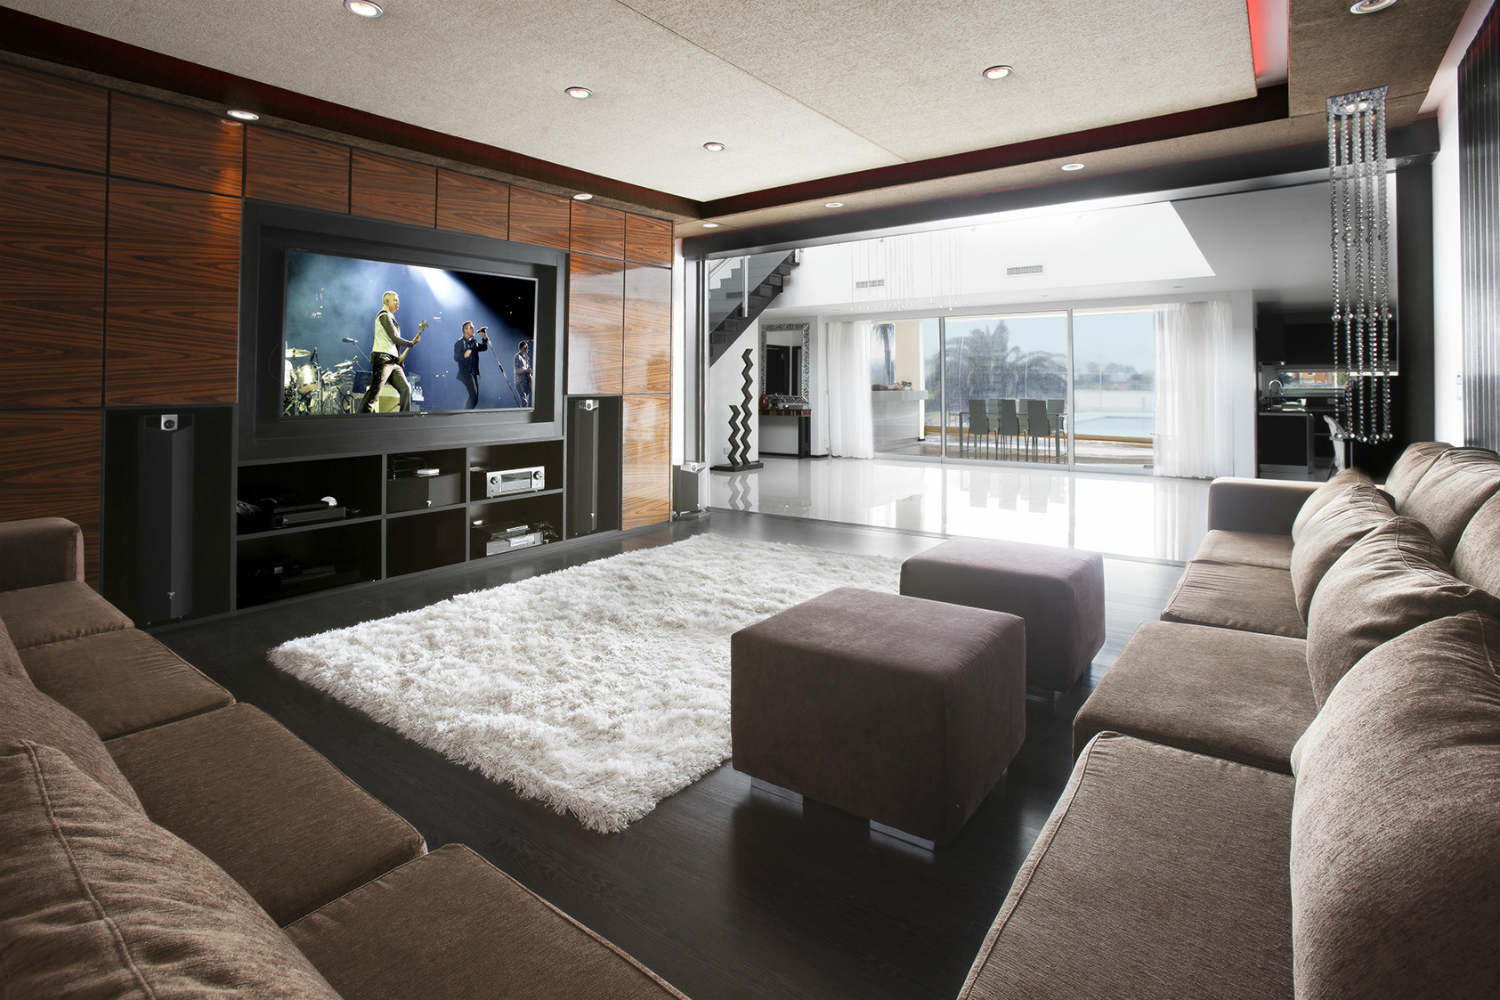 Casa Fontela in Buenos Aires, Argentina designed by WSDG. Home Theater at day light.